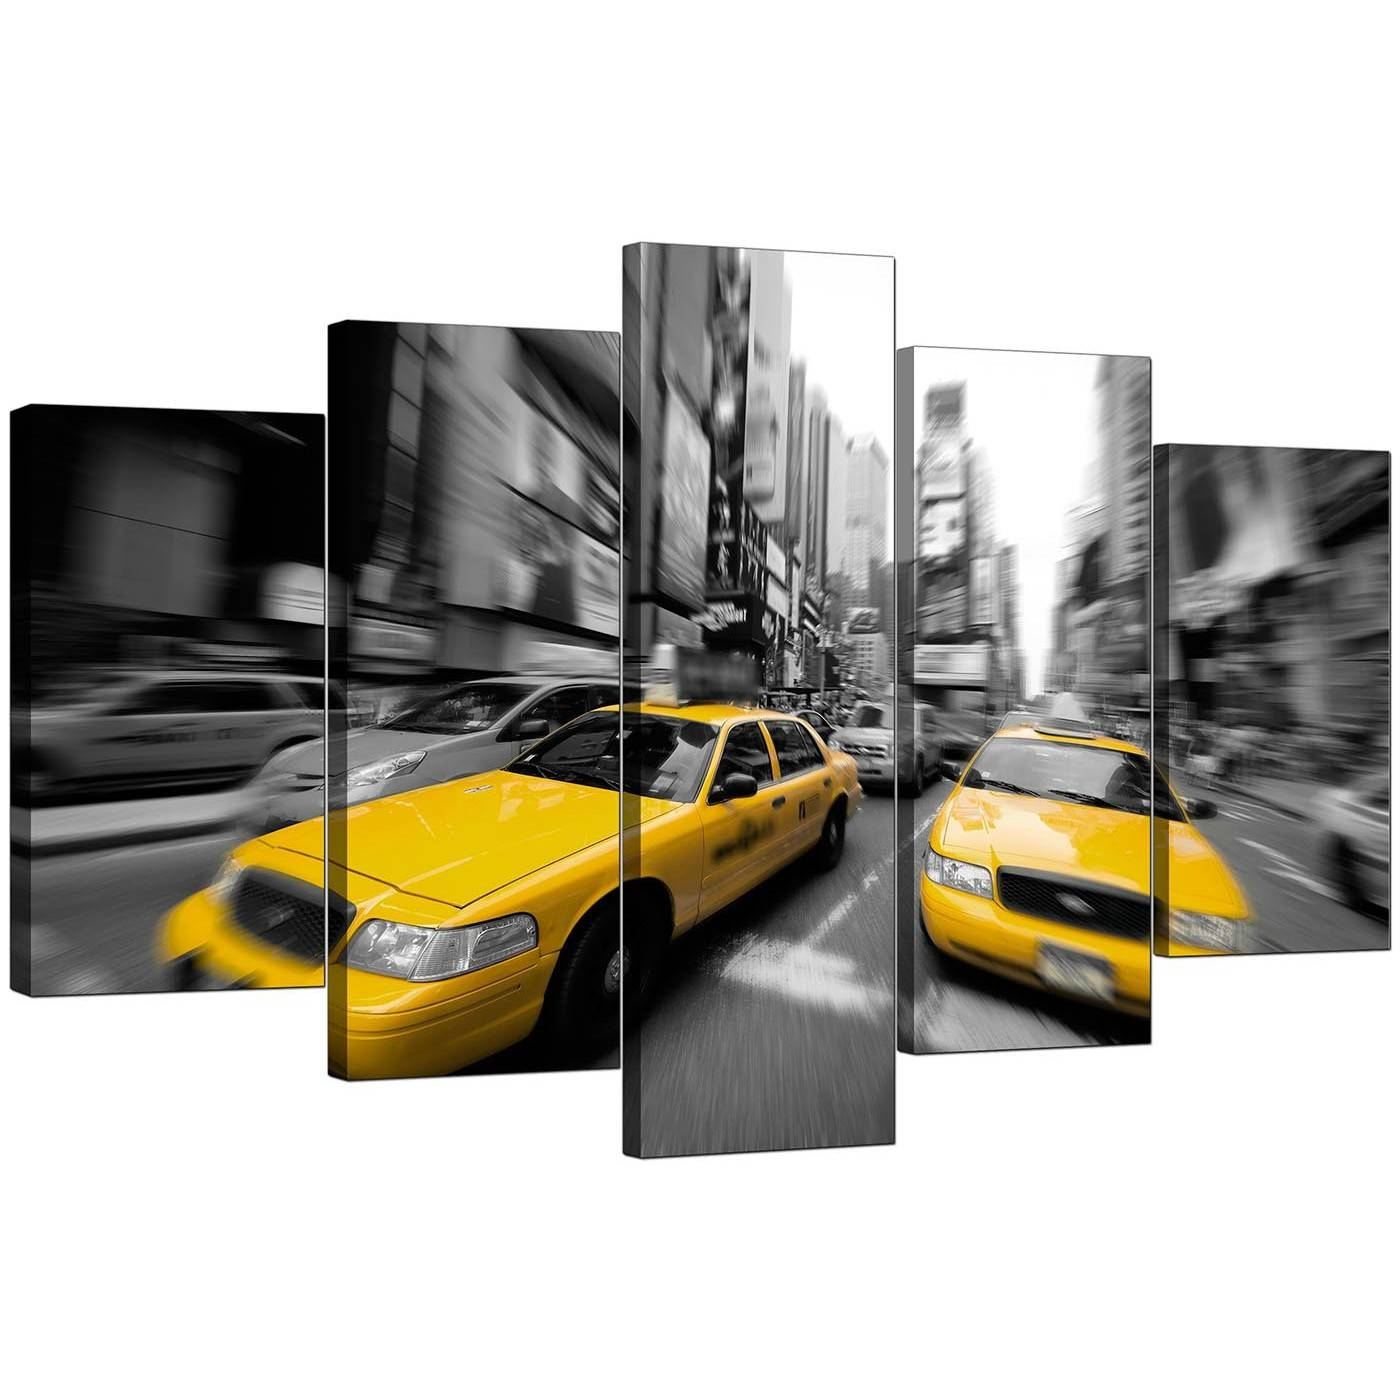 Large Yellow New York Taxi Canvas Prints Set Of 5 In Black & White Within Newest Black And White New York Canvas Wall Art (View 19 of 20)